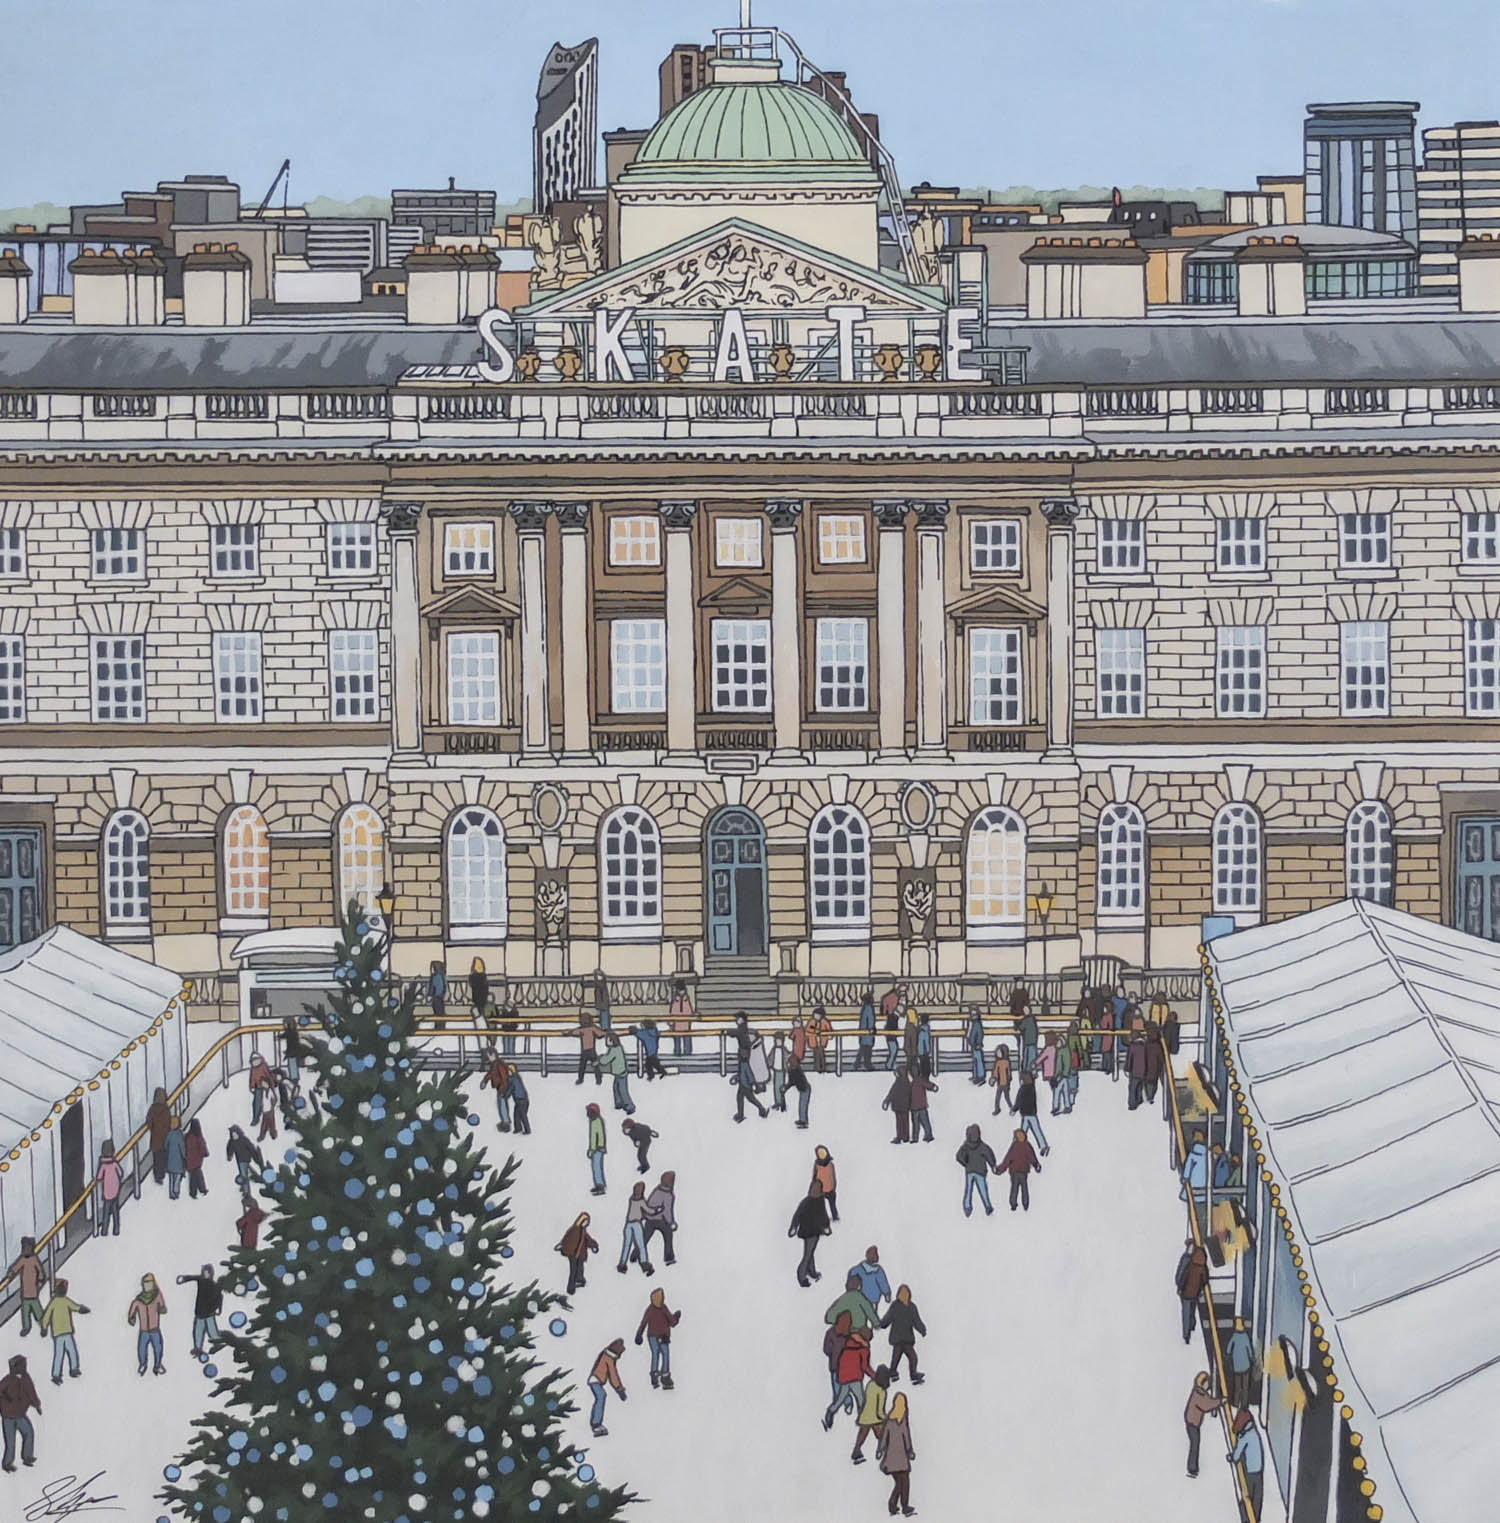 Skate Somerset House Painting by Jonathan Chapman